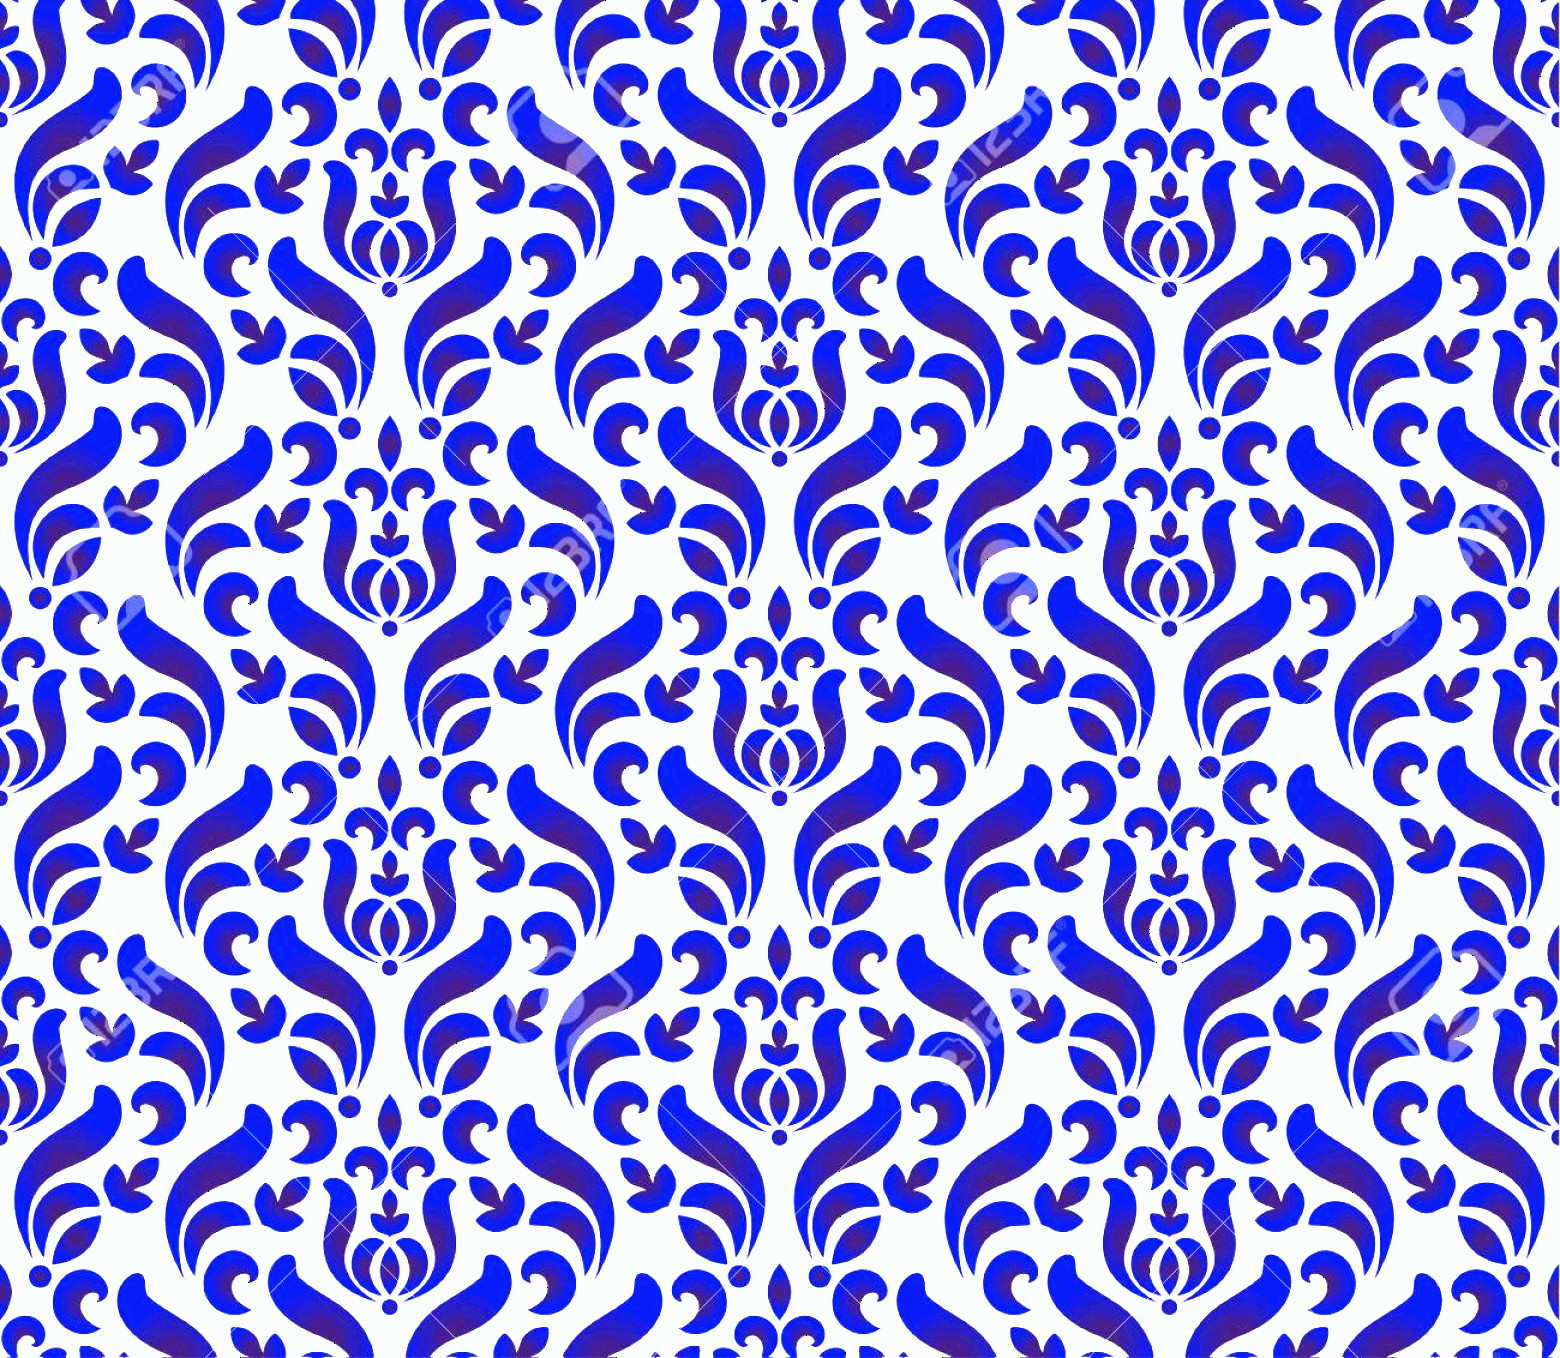 Blue And White Damask Vectors: Photostock Vector Seamless Damask Pattern Blue And White Wallpaper Classic Style Of Baroque Porcelain Floral Decorativ